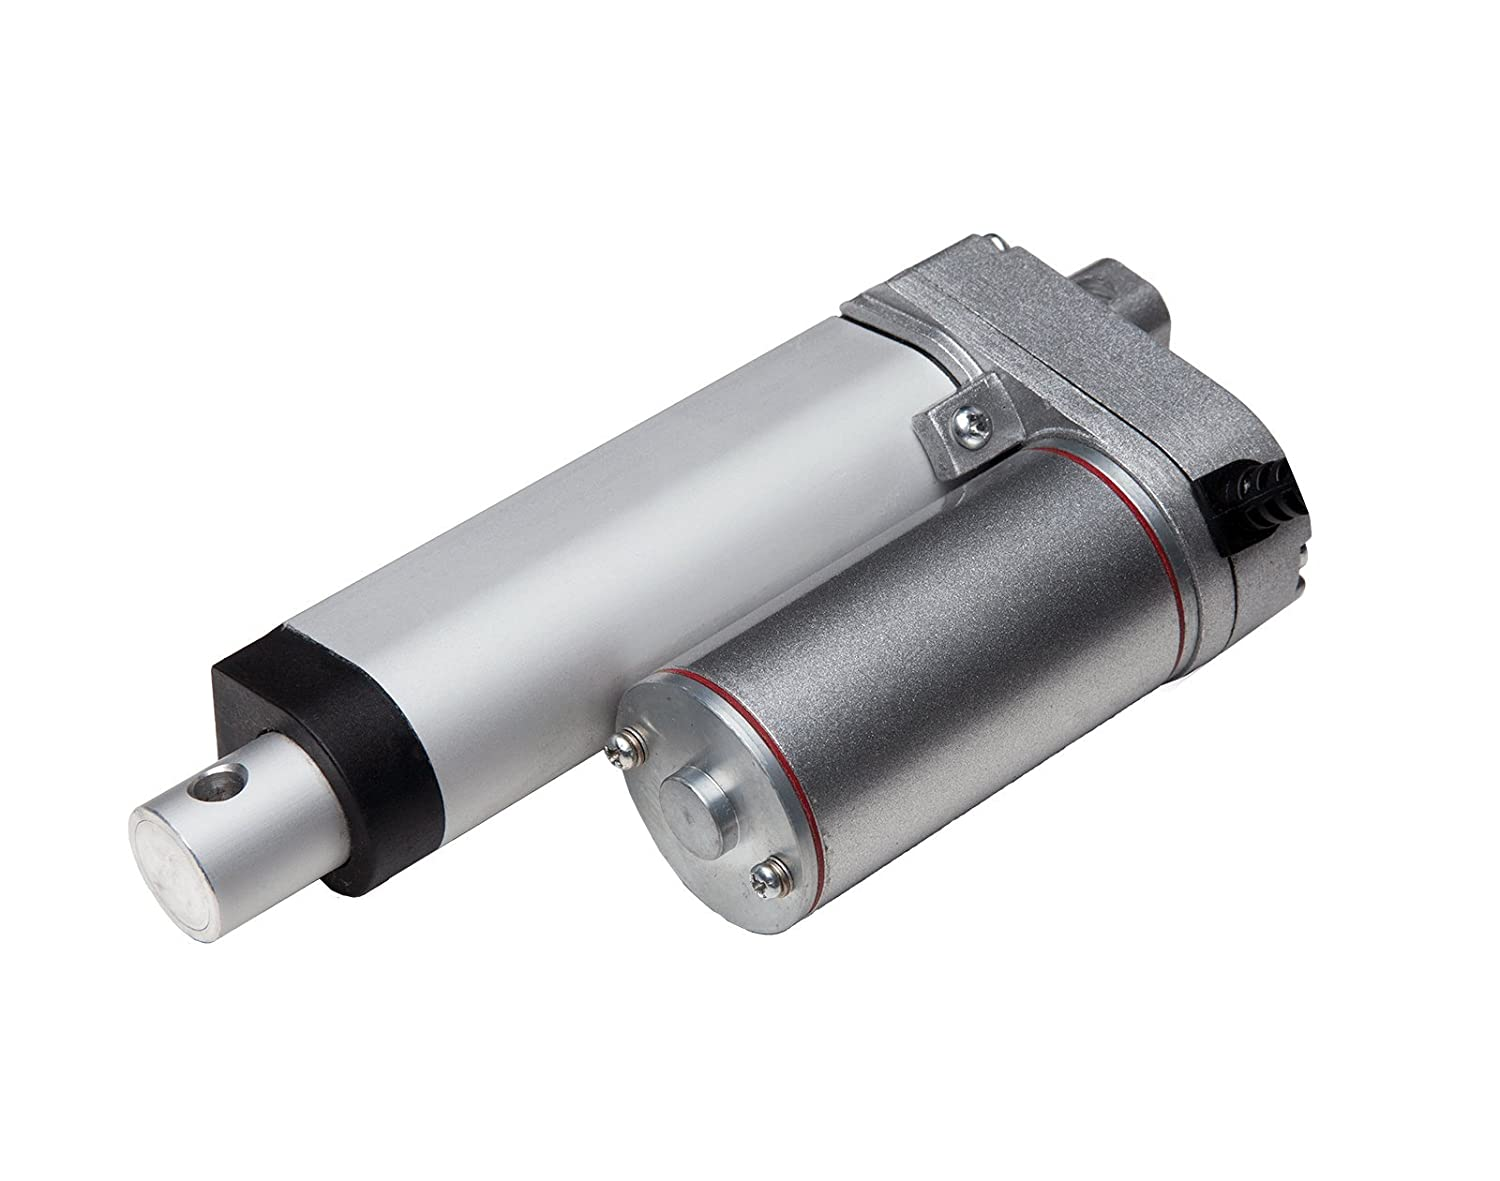 Force 50 lbs Progressive Automations Linear Actuator Stroke Size 4 Speed 1.2//sec 12 VDC